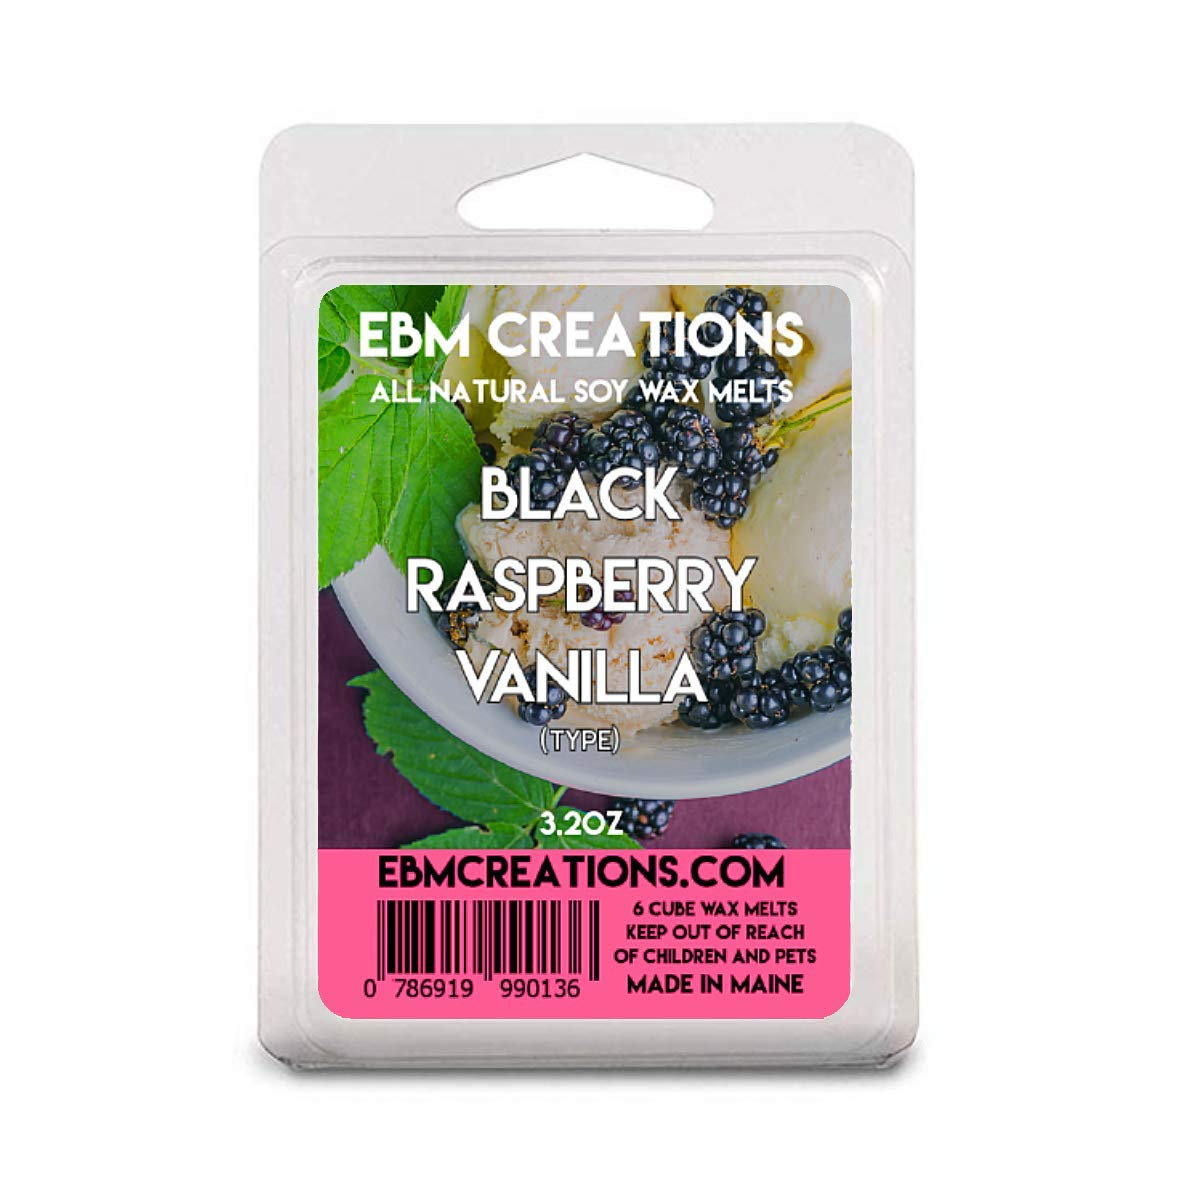 Black Raspberry Vanilla (Type) - Scented All Natural Soy Wax Melts - 6 Cube Clamshell 3.2oz Highly Scented!